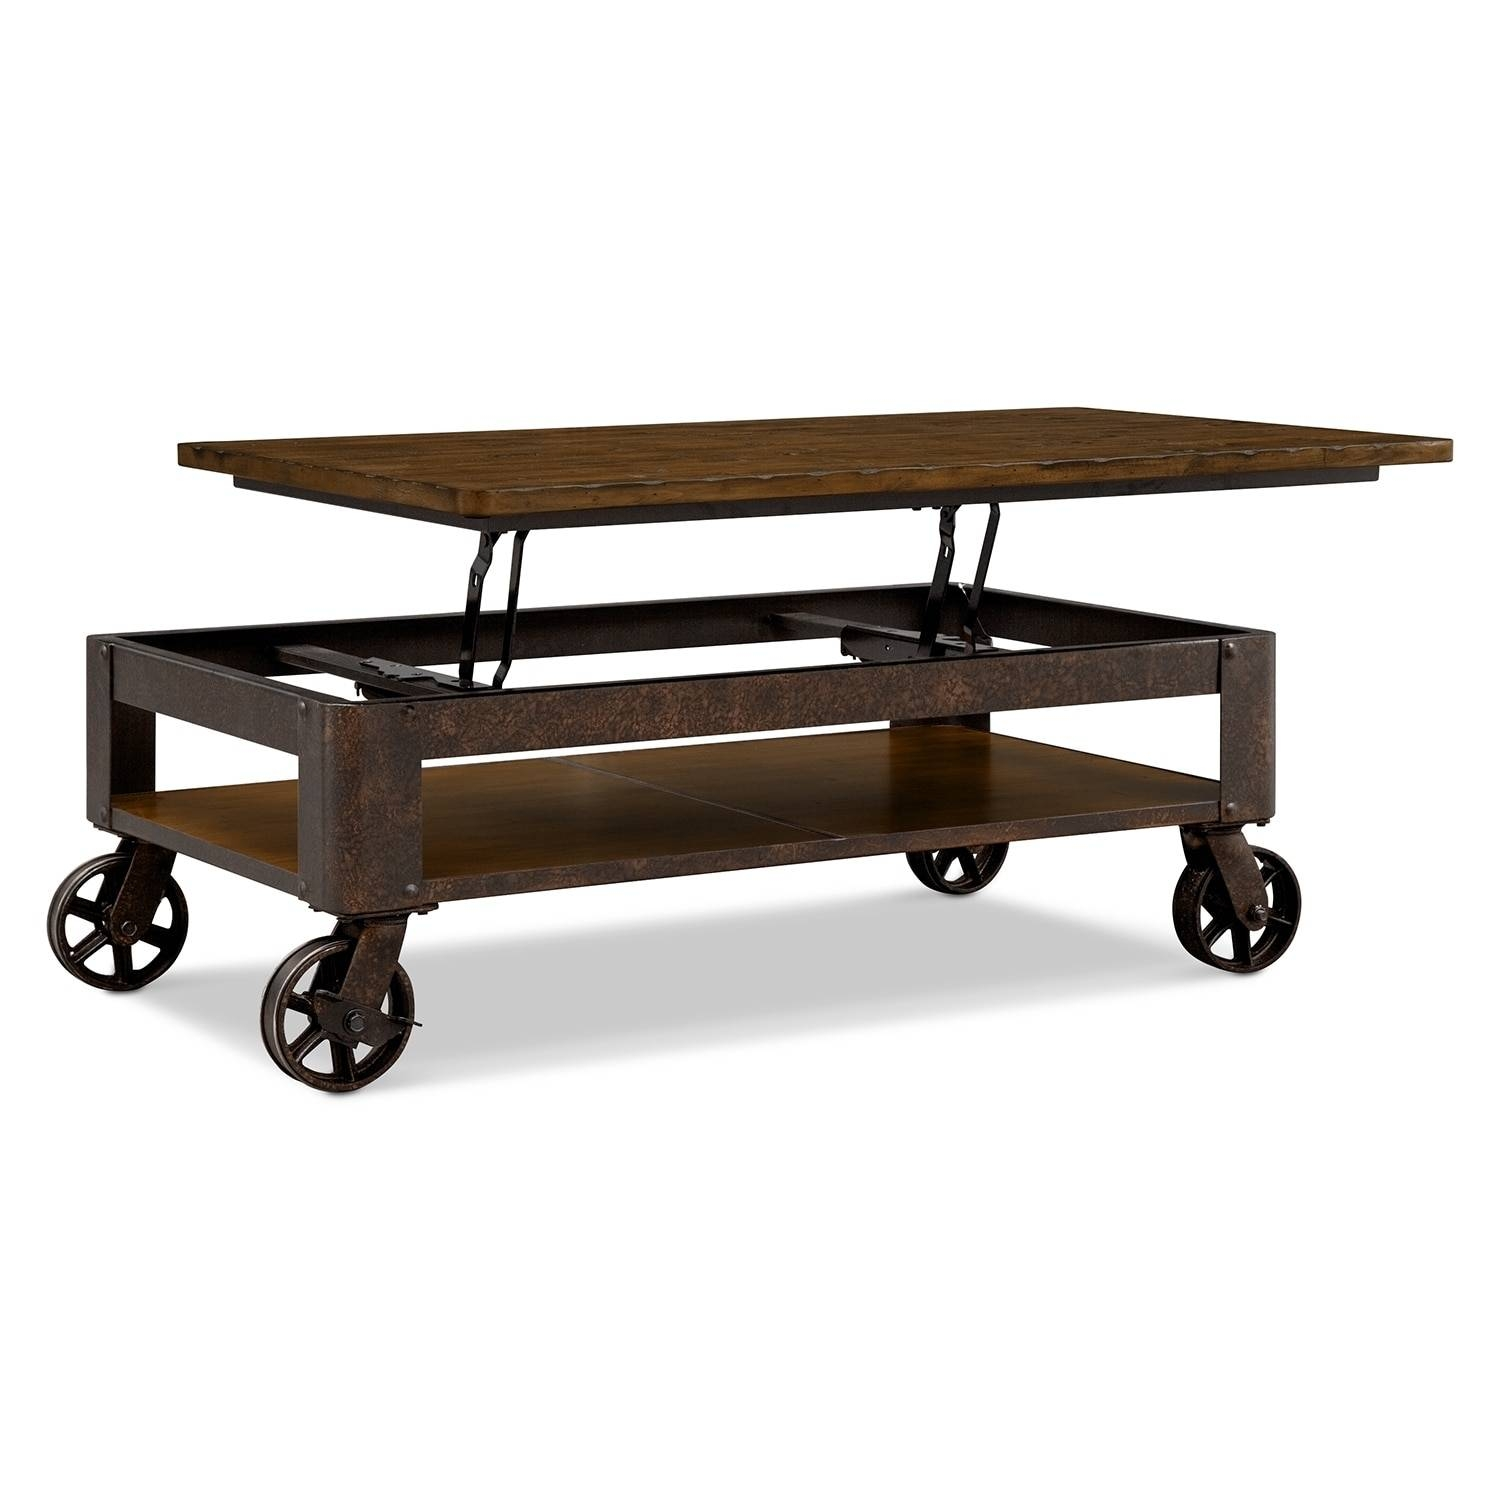 Shortline Lift-Top Cocktail Table - Distressed Pine | Value City for Top Lifting Coffee Tables (Image 25 of 30)